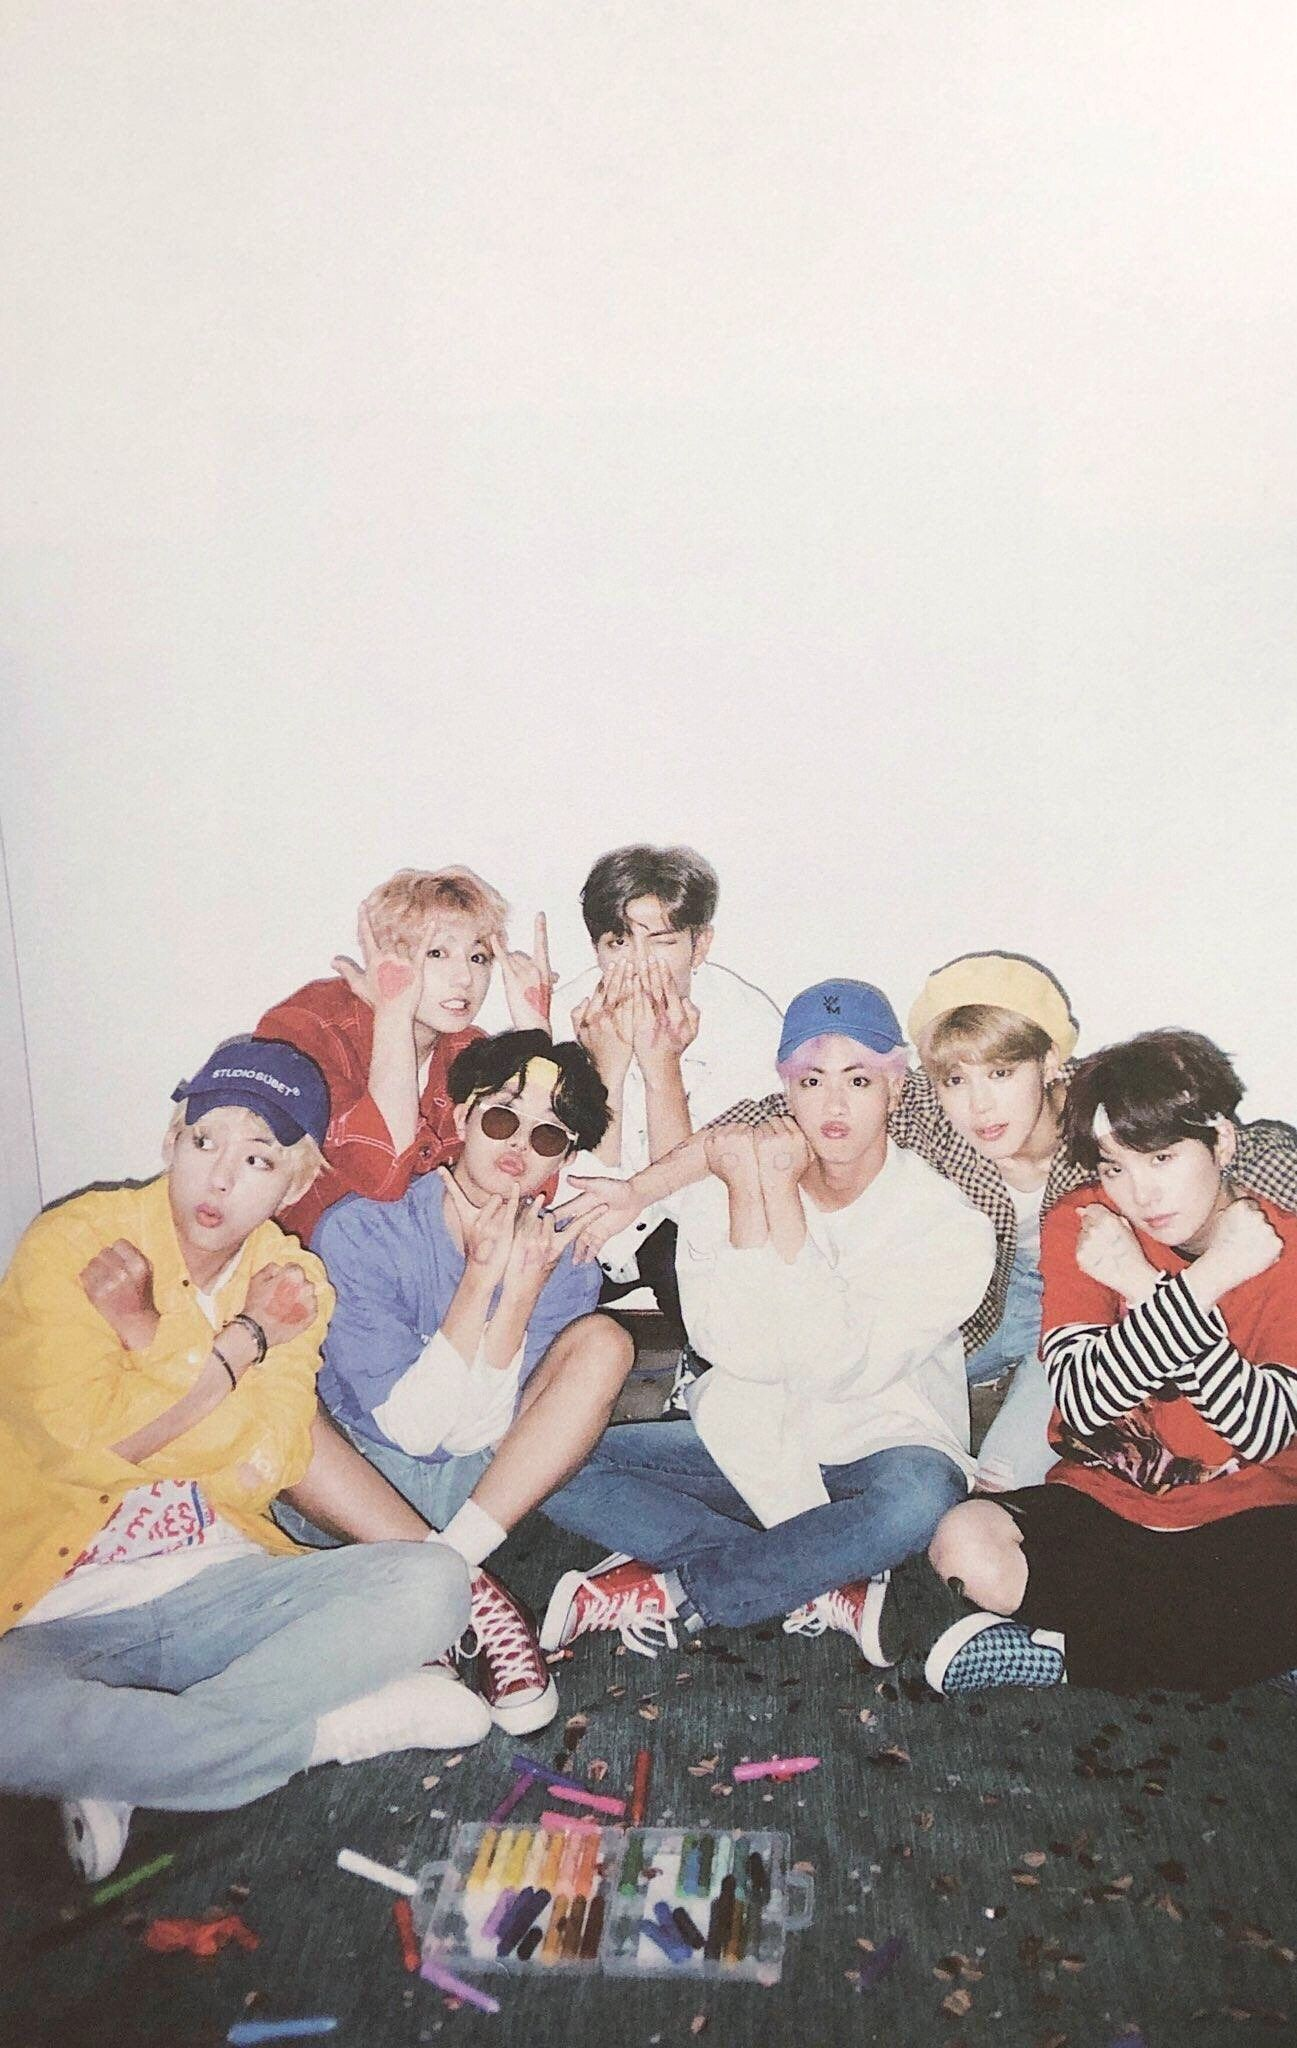 Bts 2021 Wallpapers Top Free Bts 2021 Backgrounds Wallpaperaccess